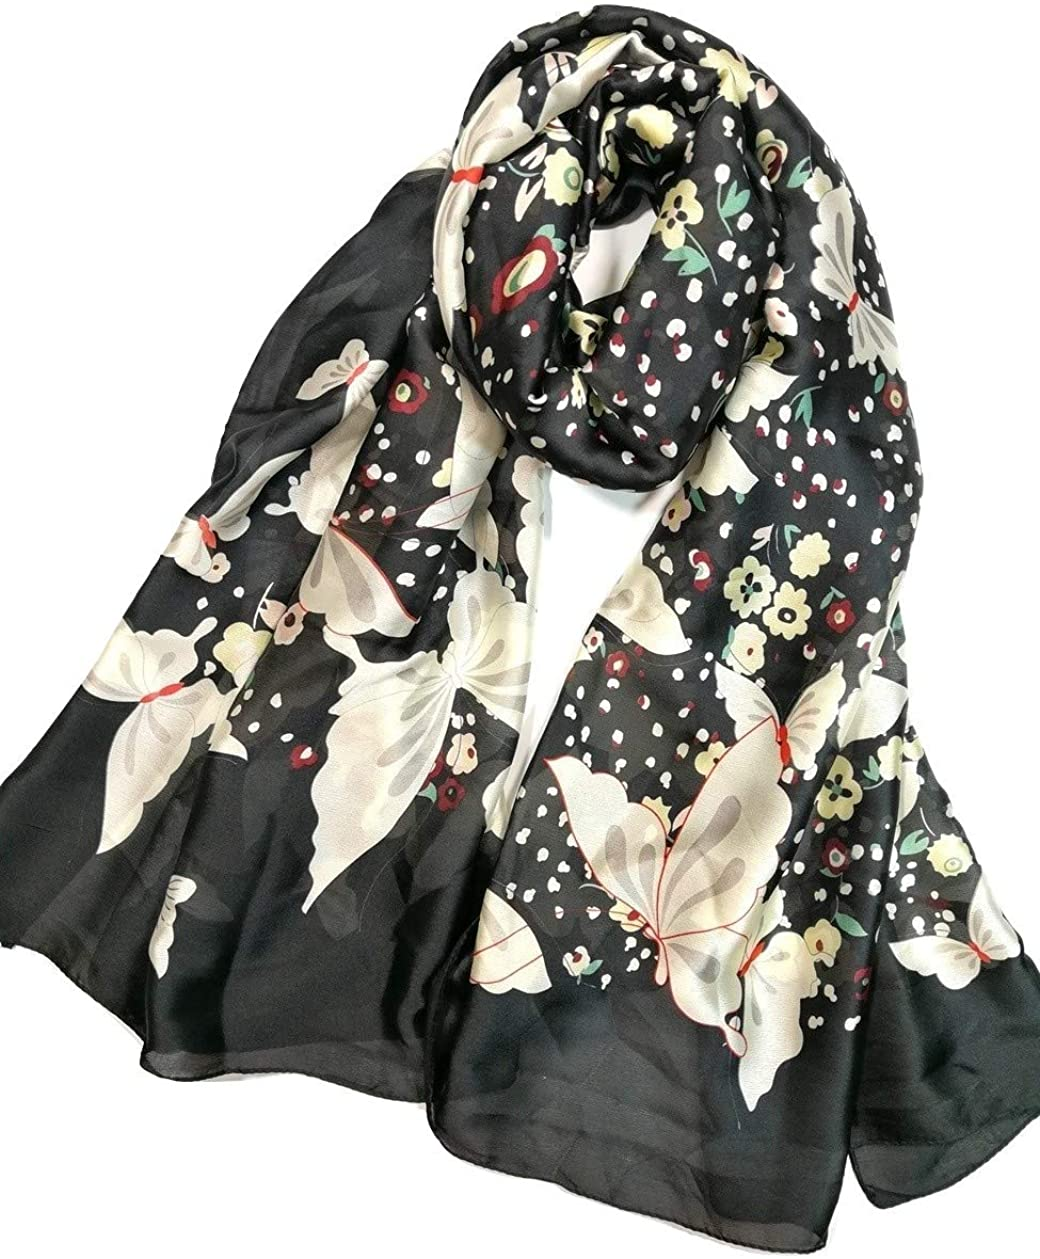 Shanlin Silk Feel Long Floral Satin Scarves for Women in Gift Box